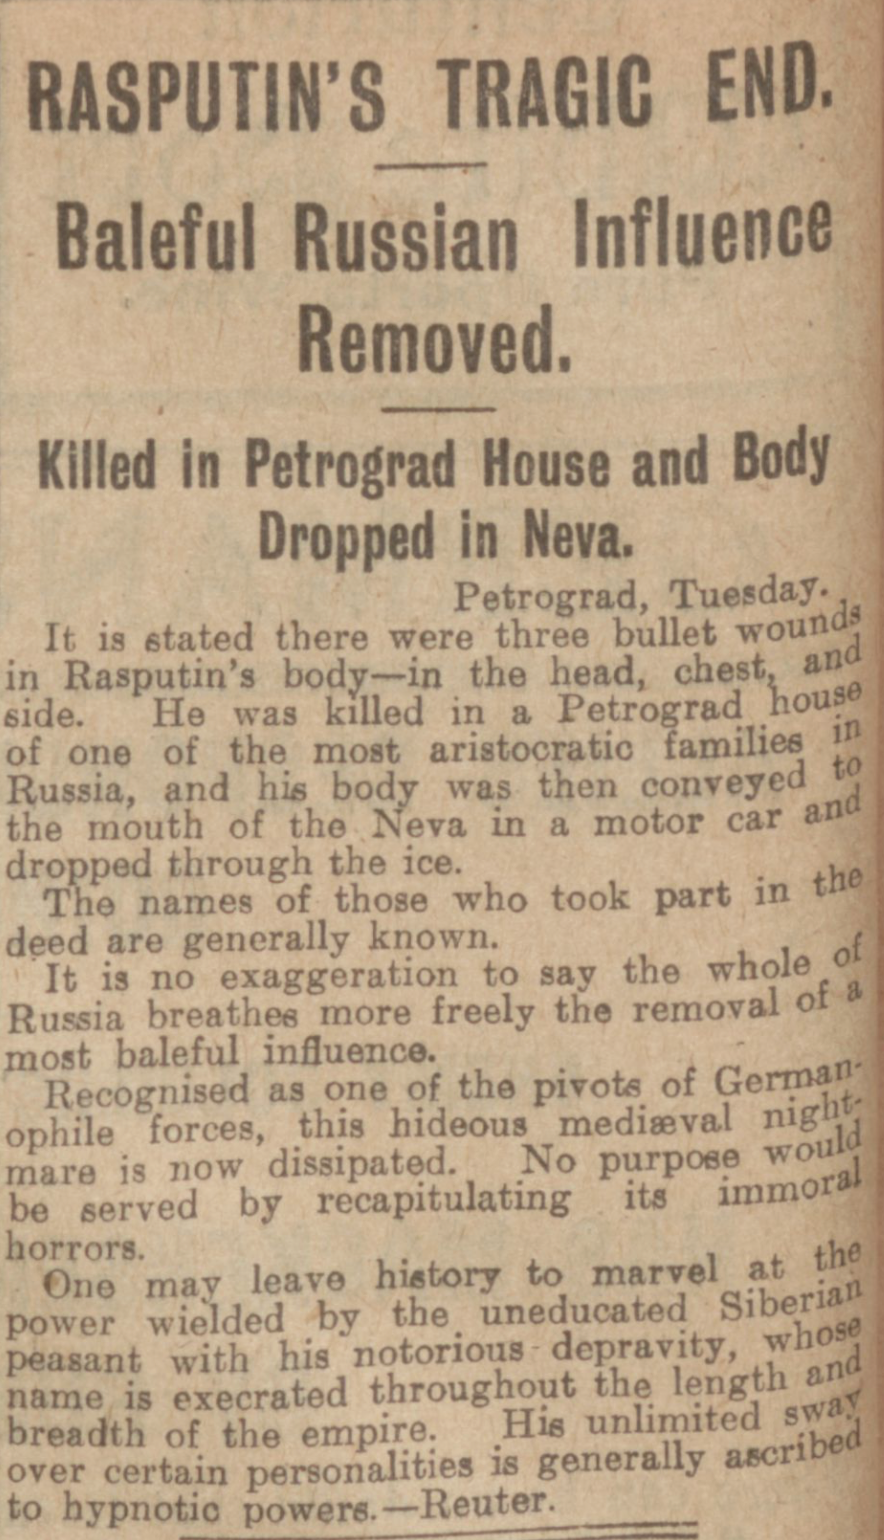 """Rasputin's Tragic End."" Evening Telegraph, 3 Jan. 1917, p. 2. British Library Newspapers, tinyurl.galegroup. com/tinyurl/4B33G2. Accessed 1 Jan. 2017."